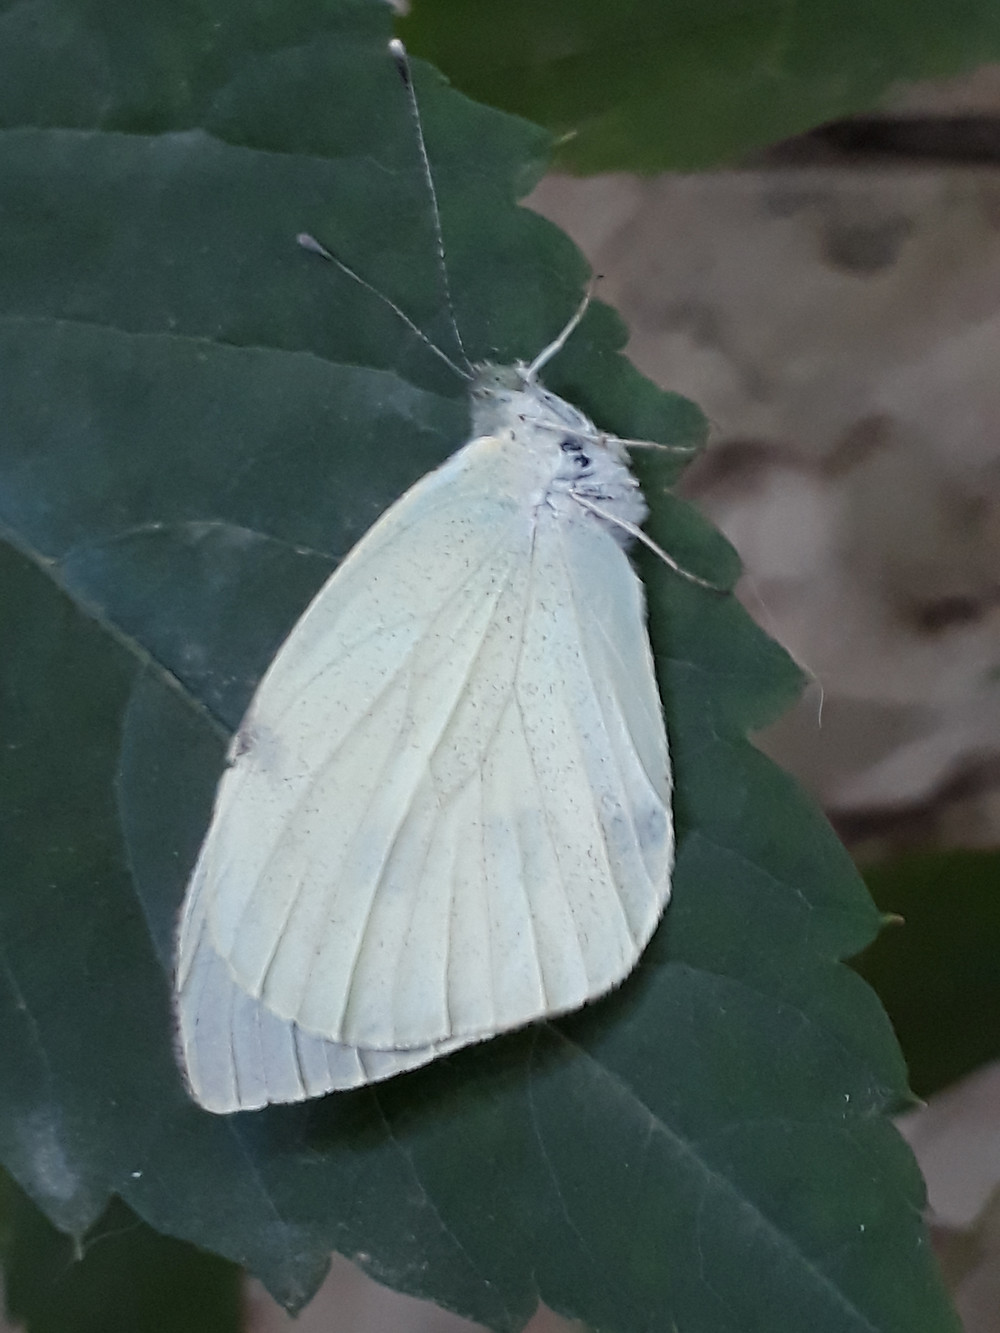 Large, pure white butterfly with small dark markings showing through its wings on a large Hydrangea leaf with a serrated leaf edge visible and buff coloured wall behind it